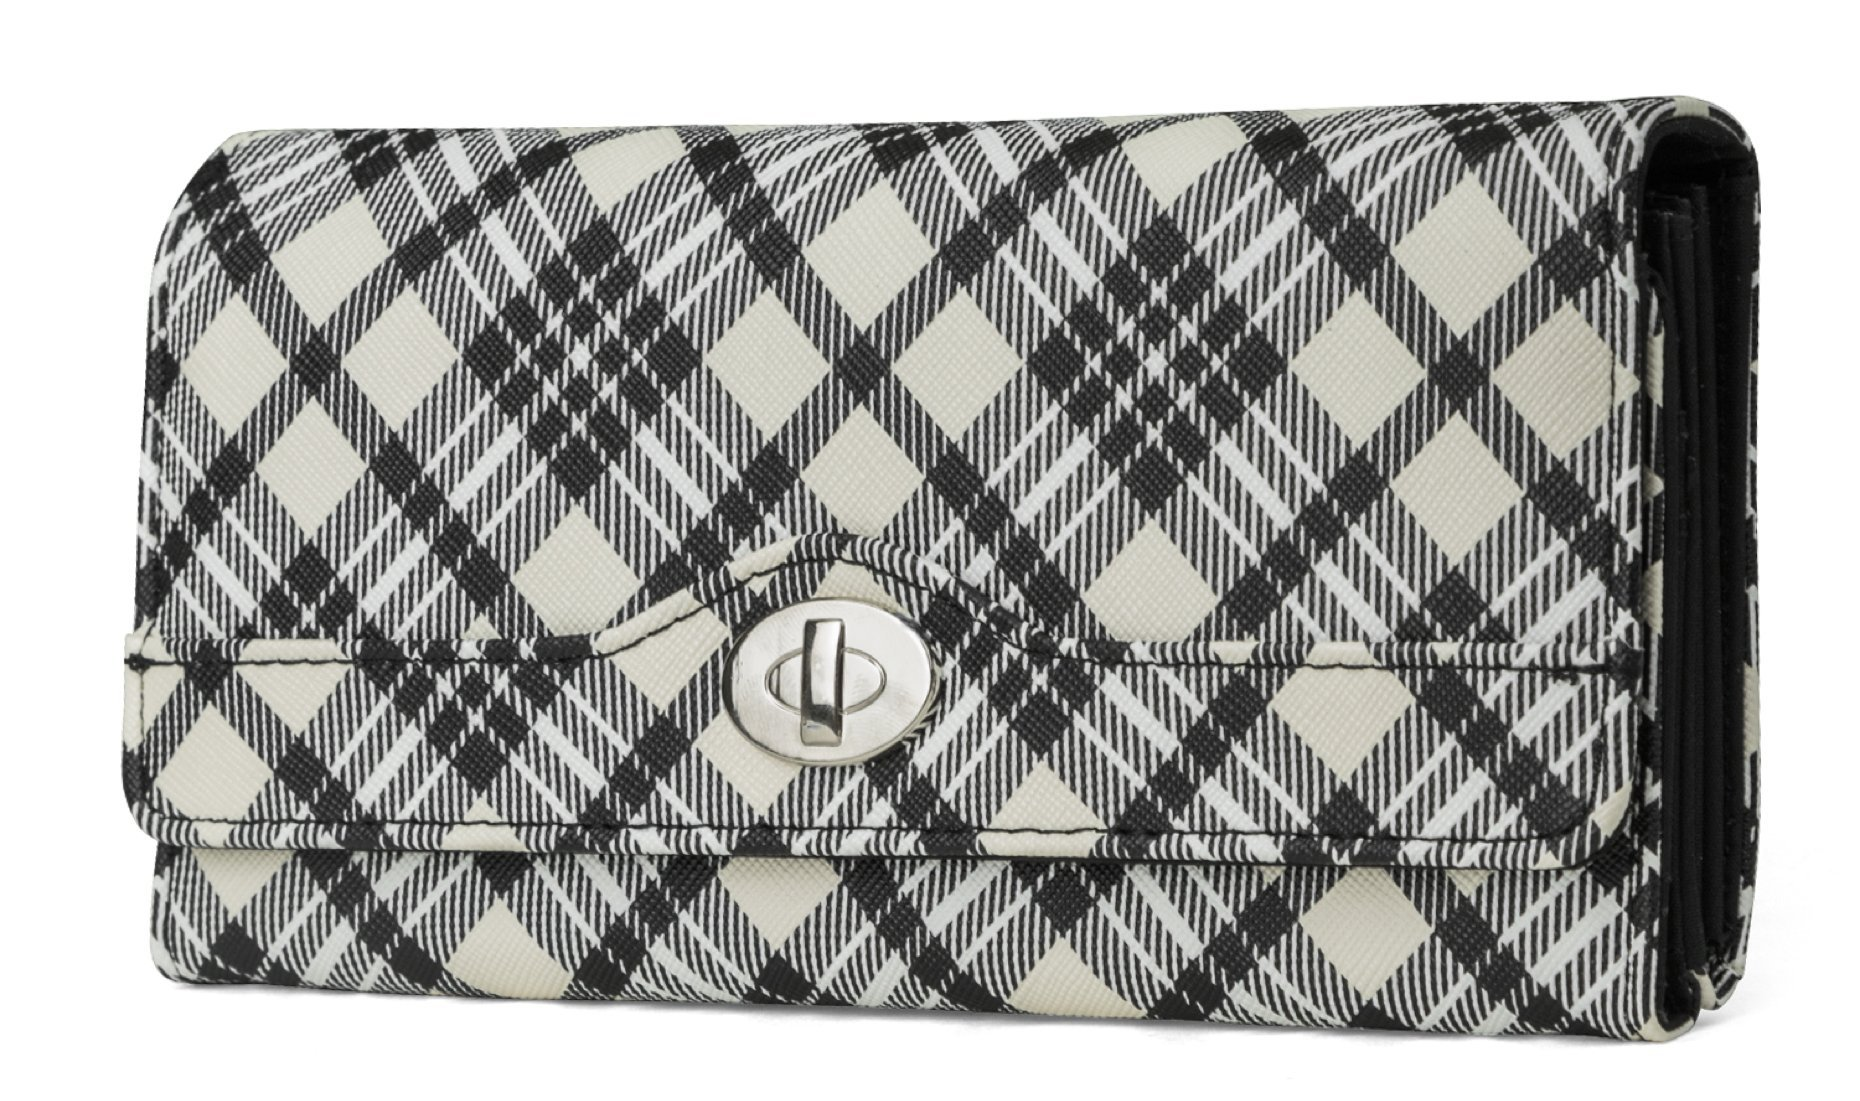 Mundi File Master Womens RFID Blocking Wallet Clutch Organizer With Change Pocket (Plaid)